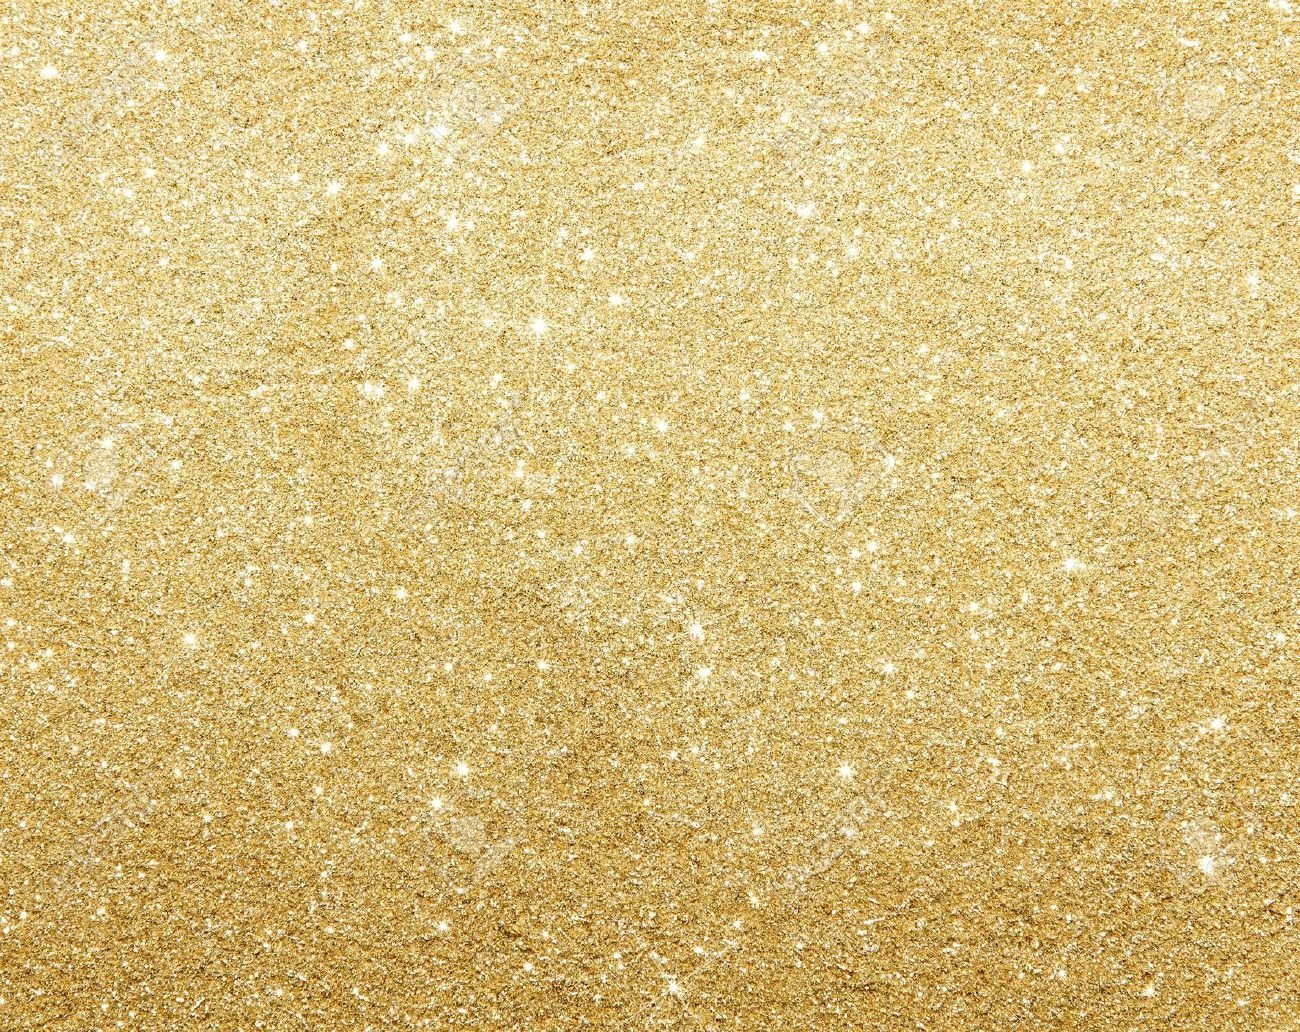 9970428-Glamour-gold-sparkling-background-Stock-Photo-glitter